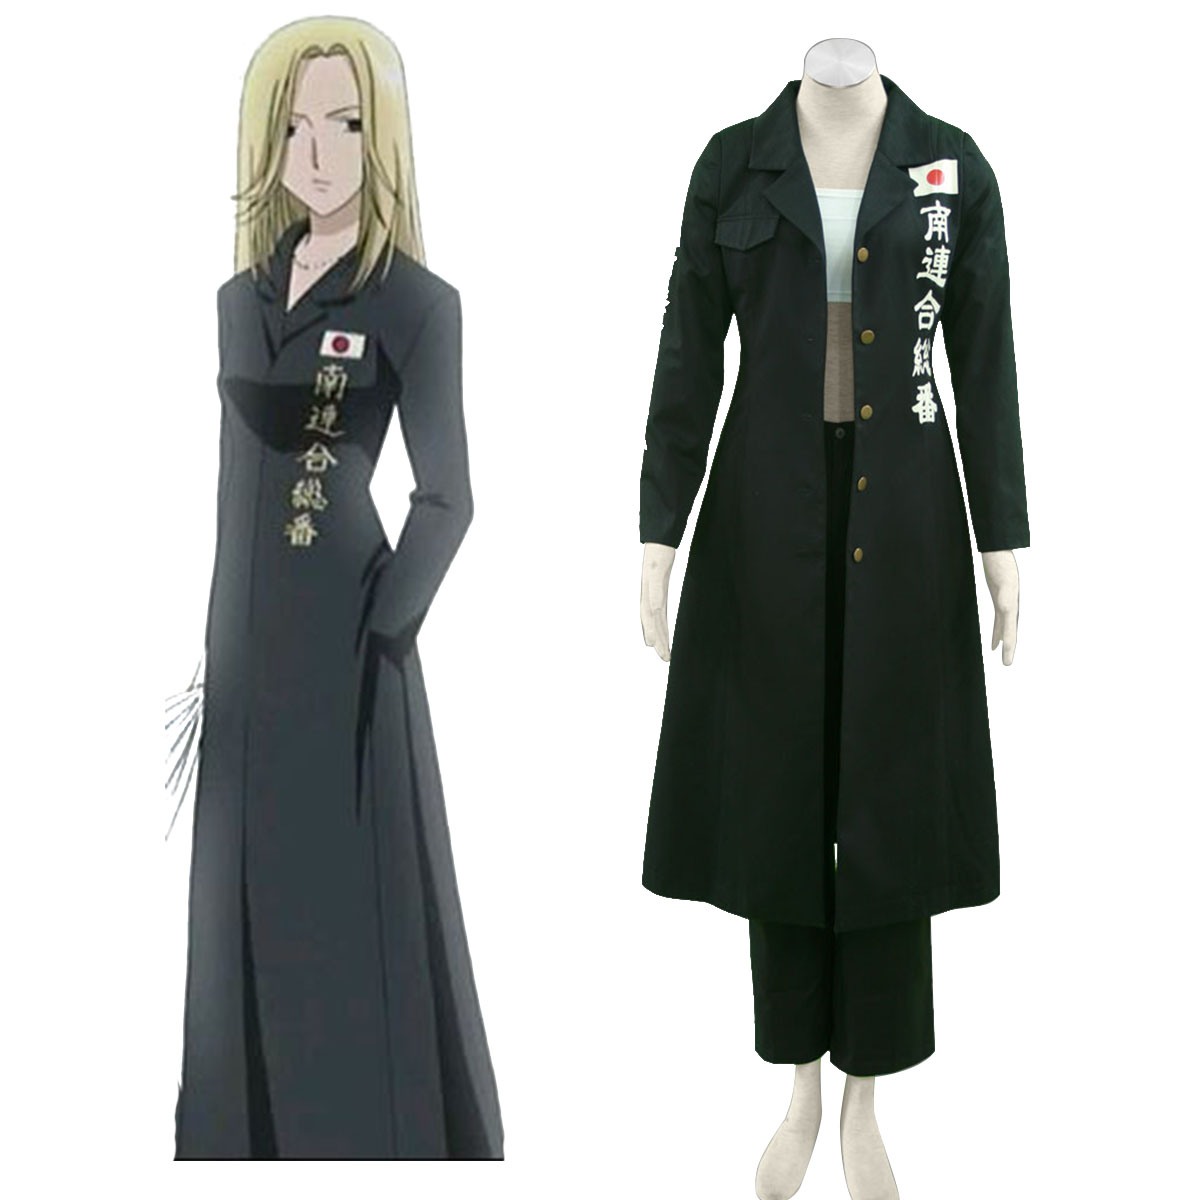 Fruits Basket Uotani Arisa Cosplay Costumes UK